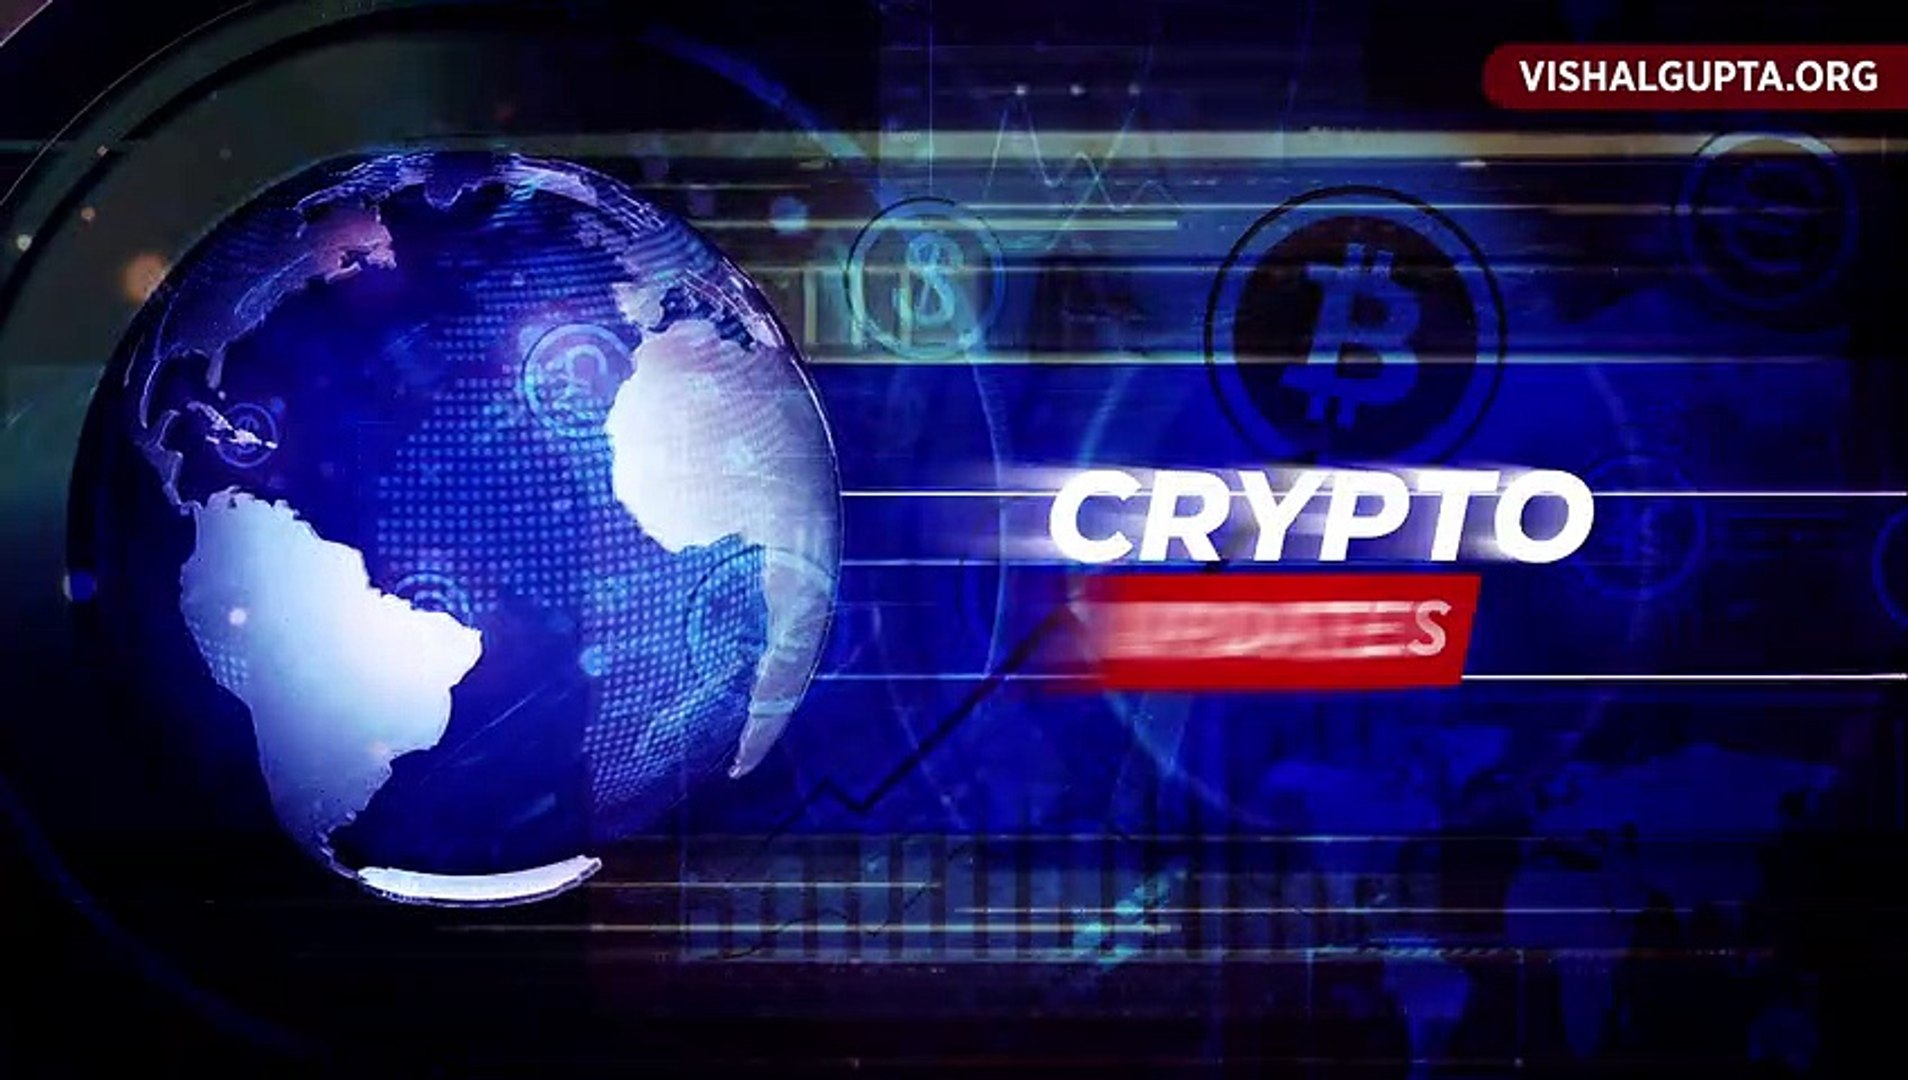 Crypto Updates #58 - BCH Services Resumed, Bomb Hoaxer Jailed, Bitcoin Price, Crypto ETF